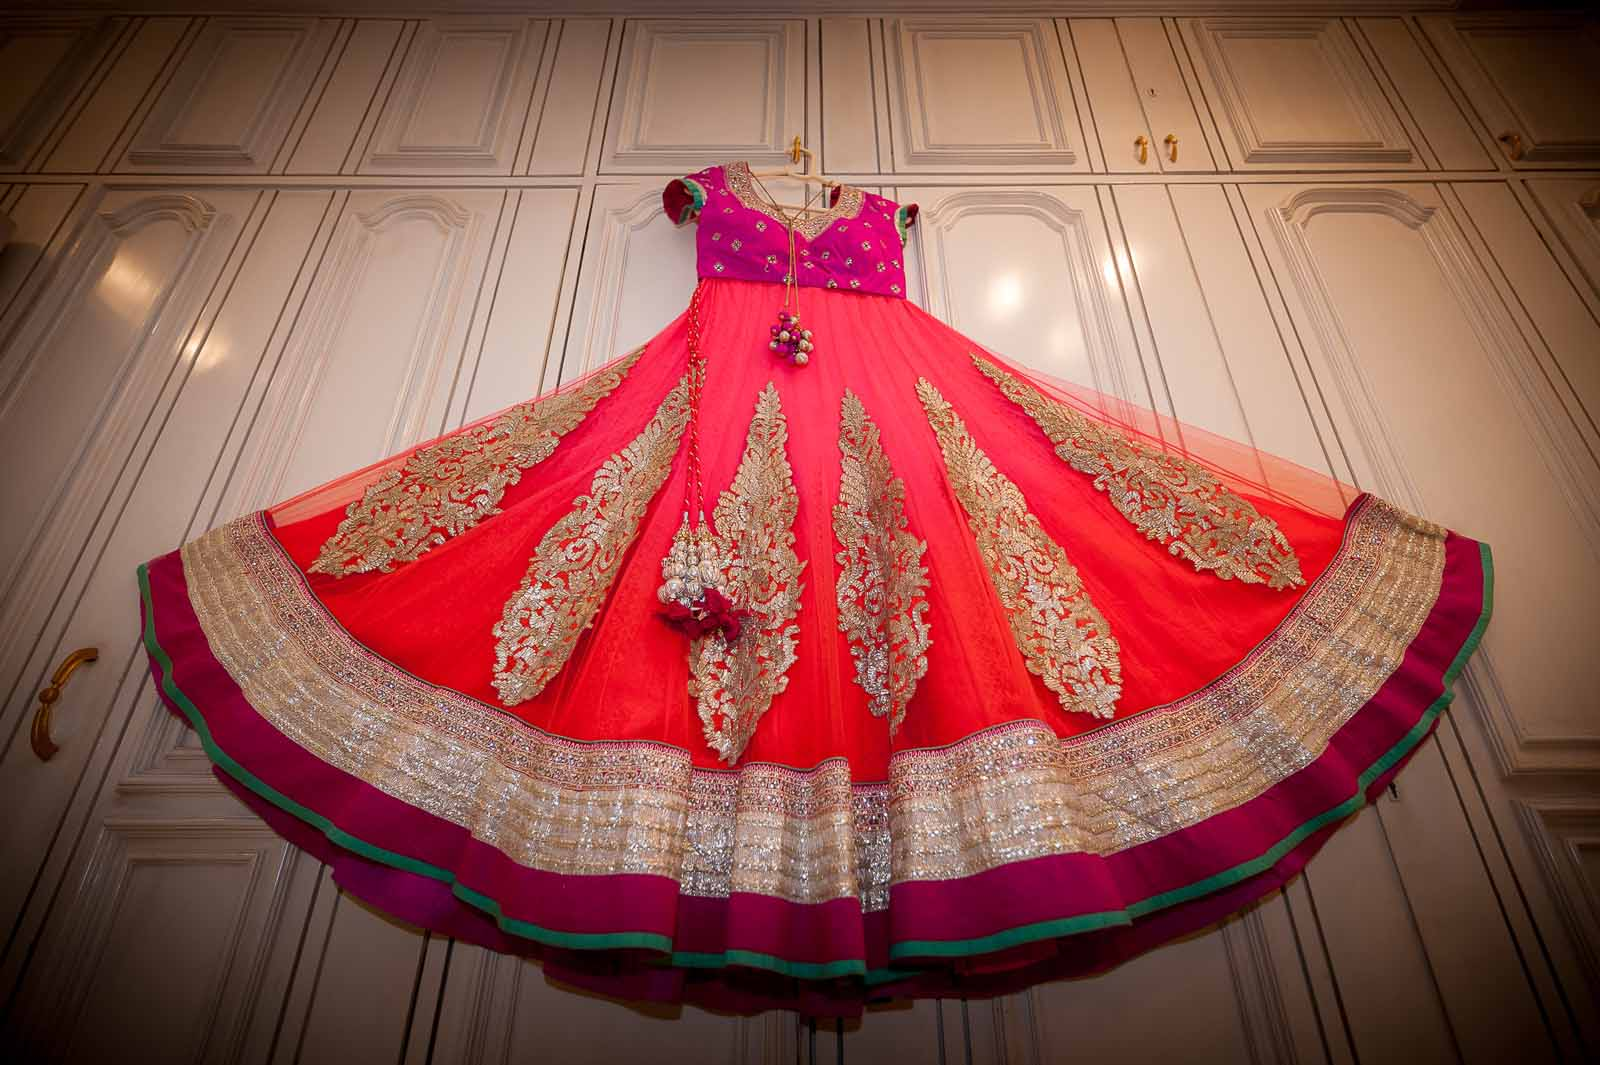 anoop-wedding-photographer-detail-bride-red-lehenga-pink-blouse